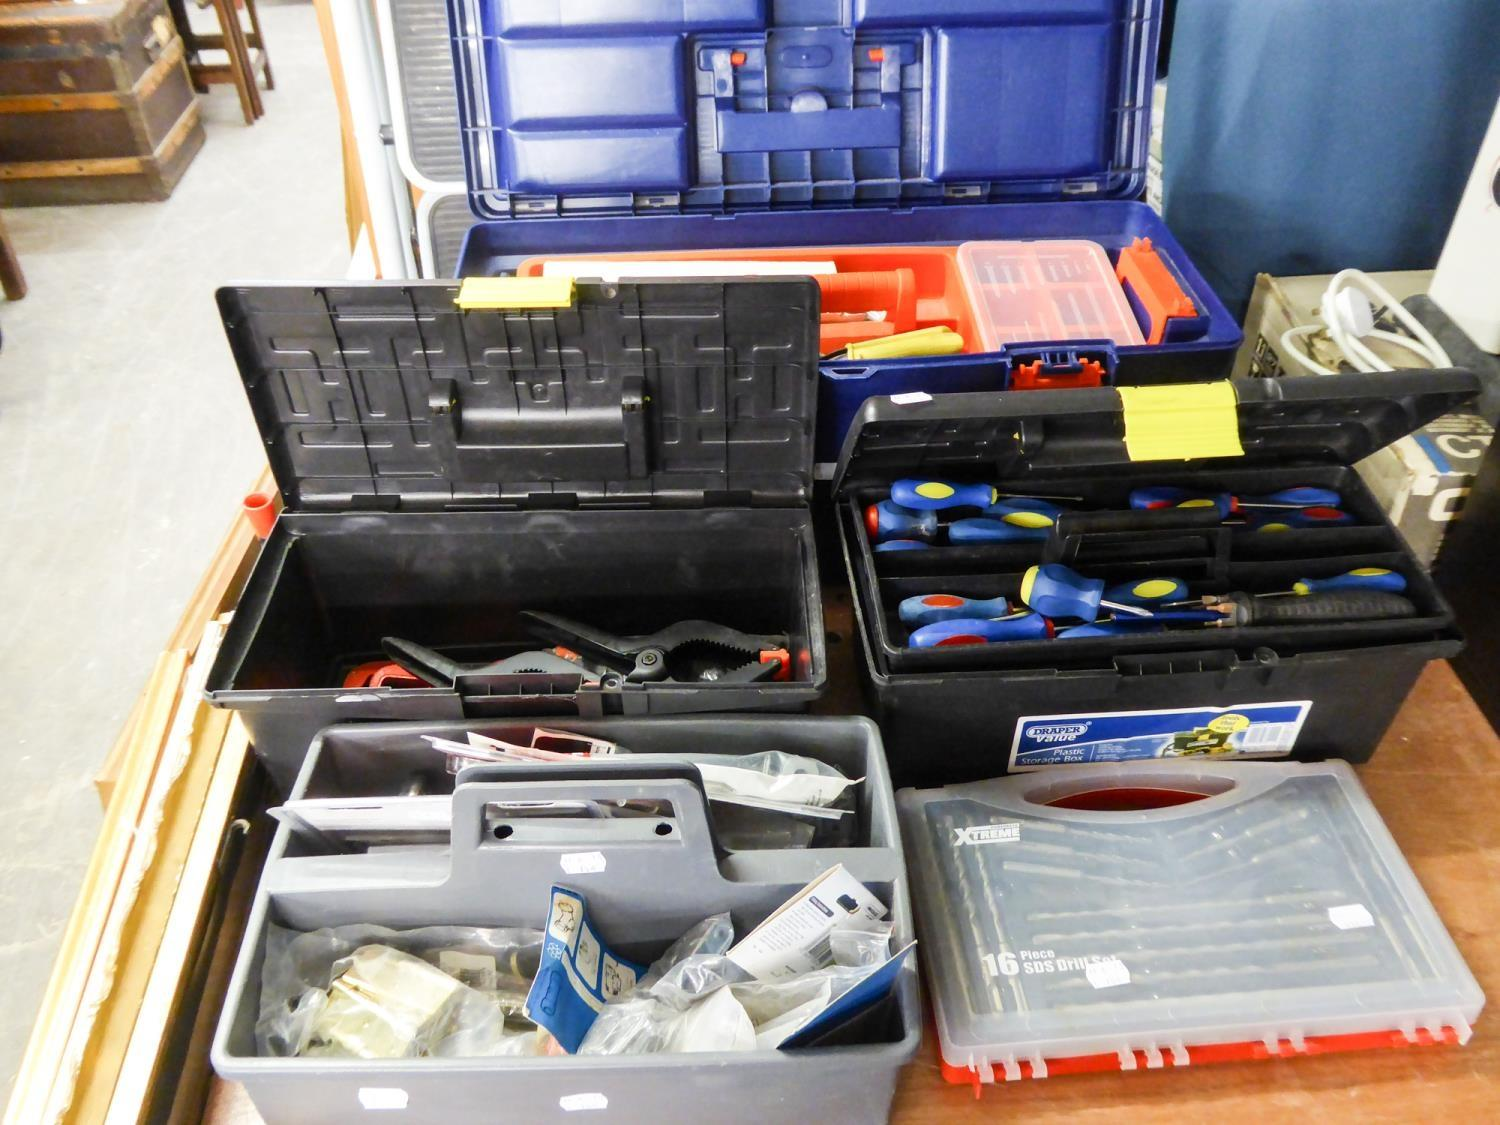 Lot 154 - LARGE TOOL BOX AND CONTENTS, TWO SMALLER TOOL BOXES AND CONTENTS, SDS DRILL BITS AND A TOOL TIDY